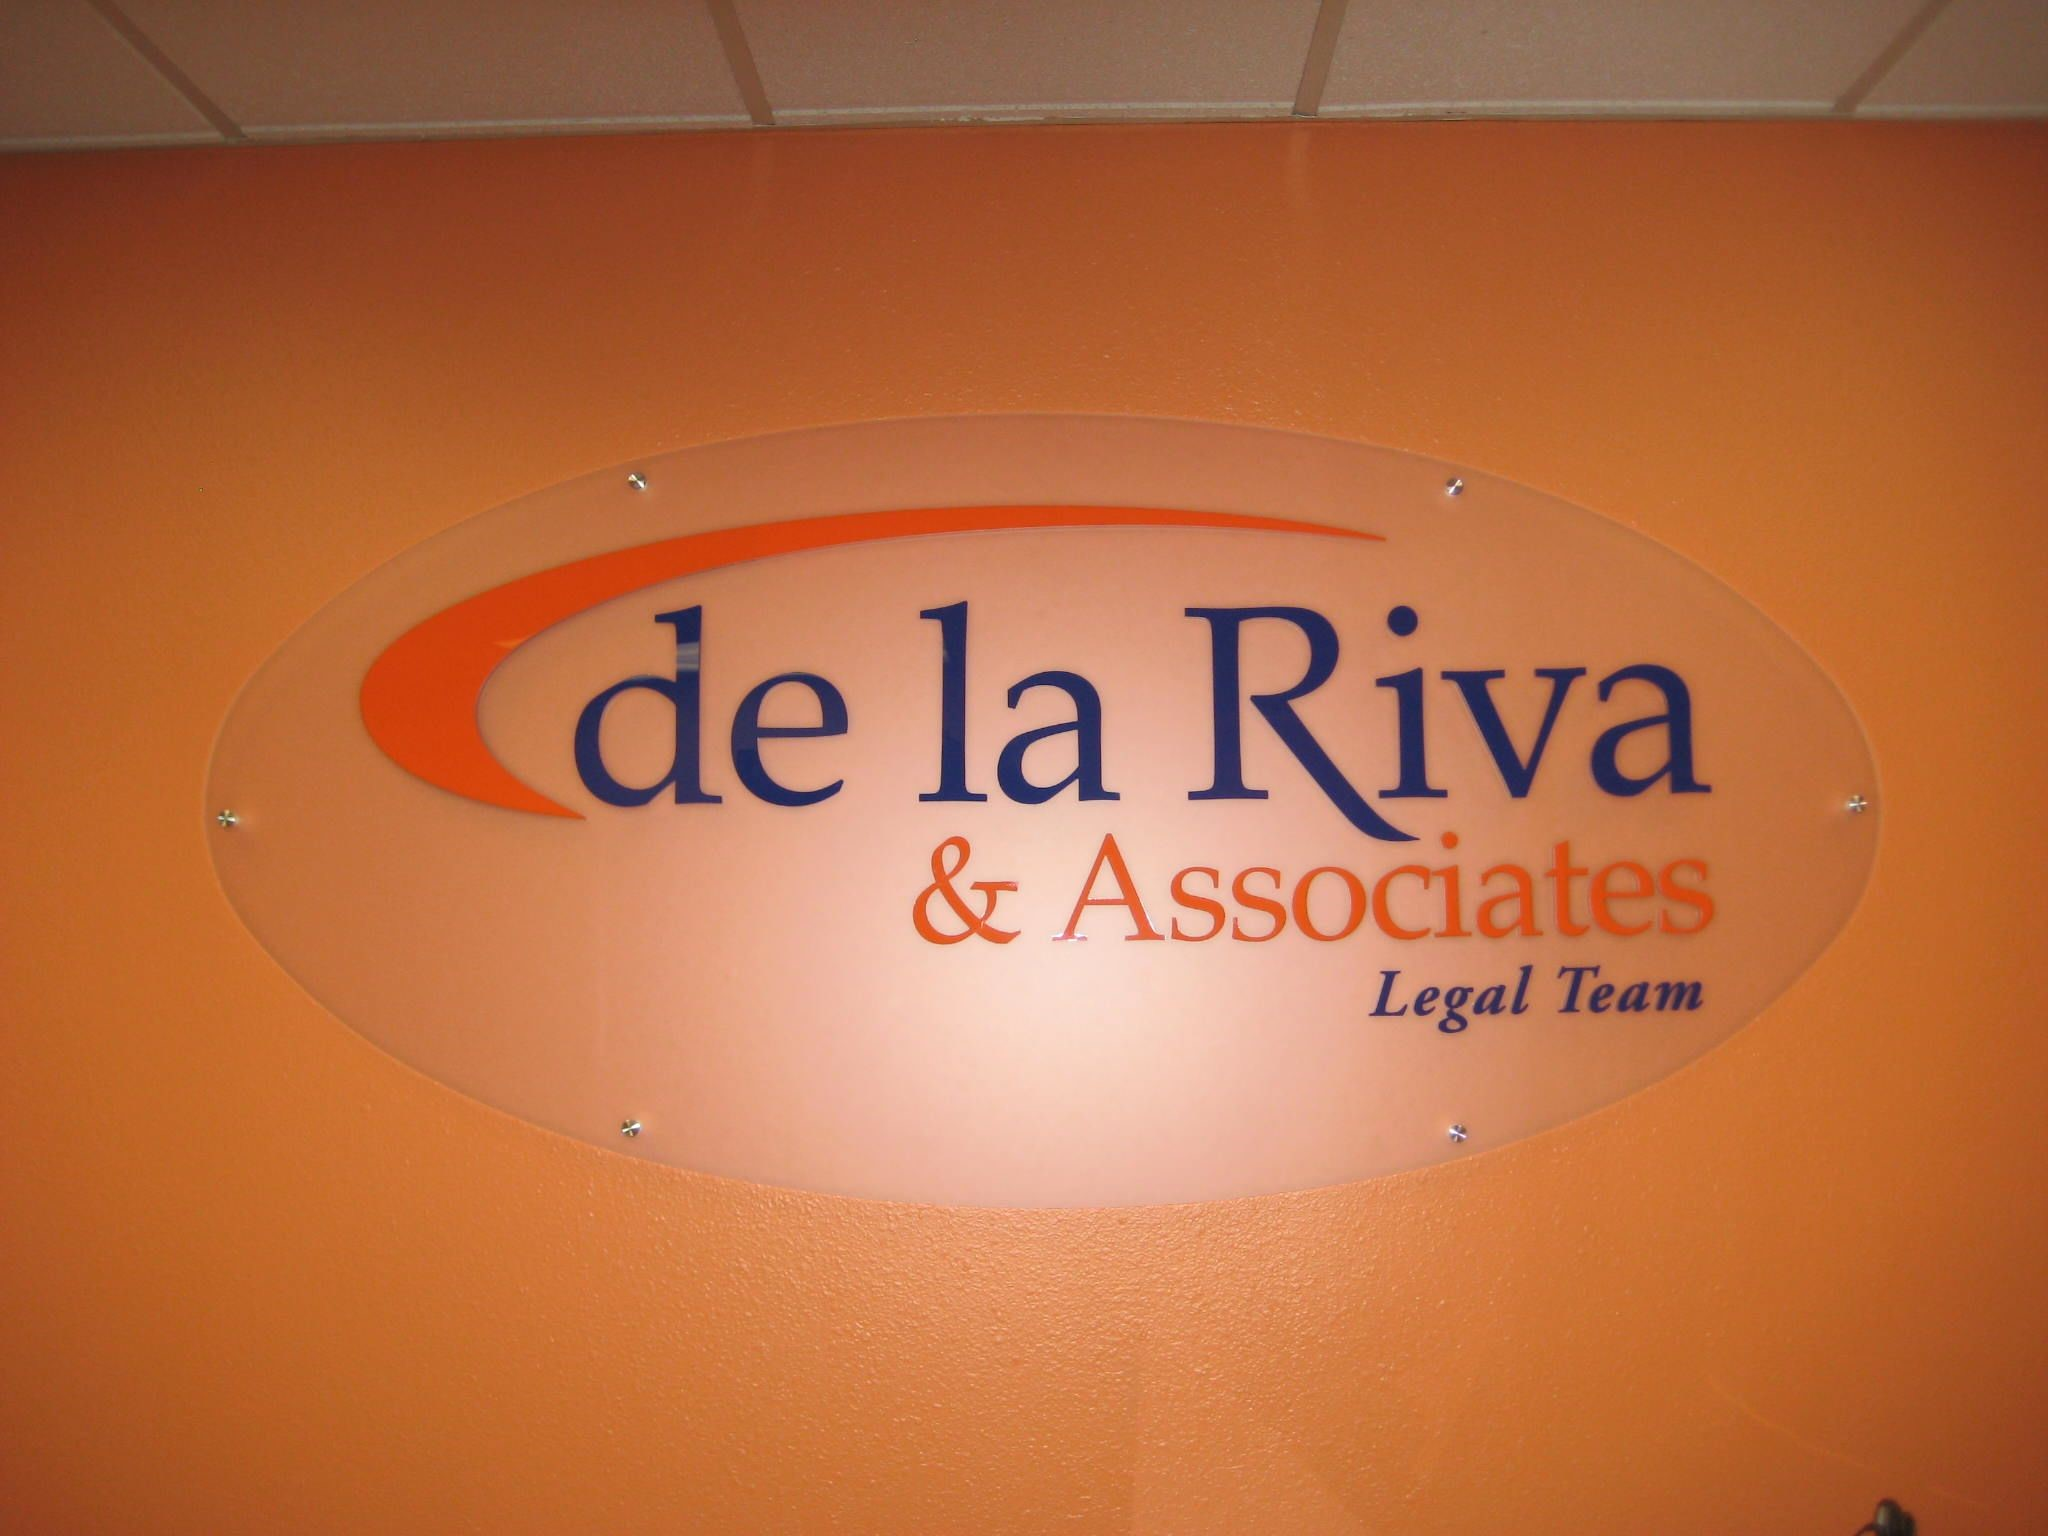 Interior Sign for de la Riva & Associates Legal Team in San Antonio, TX